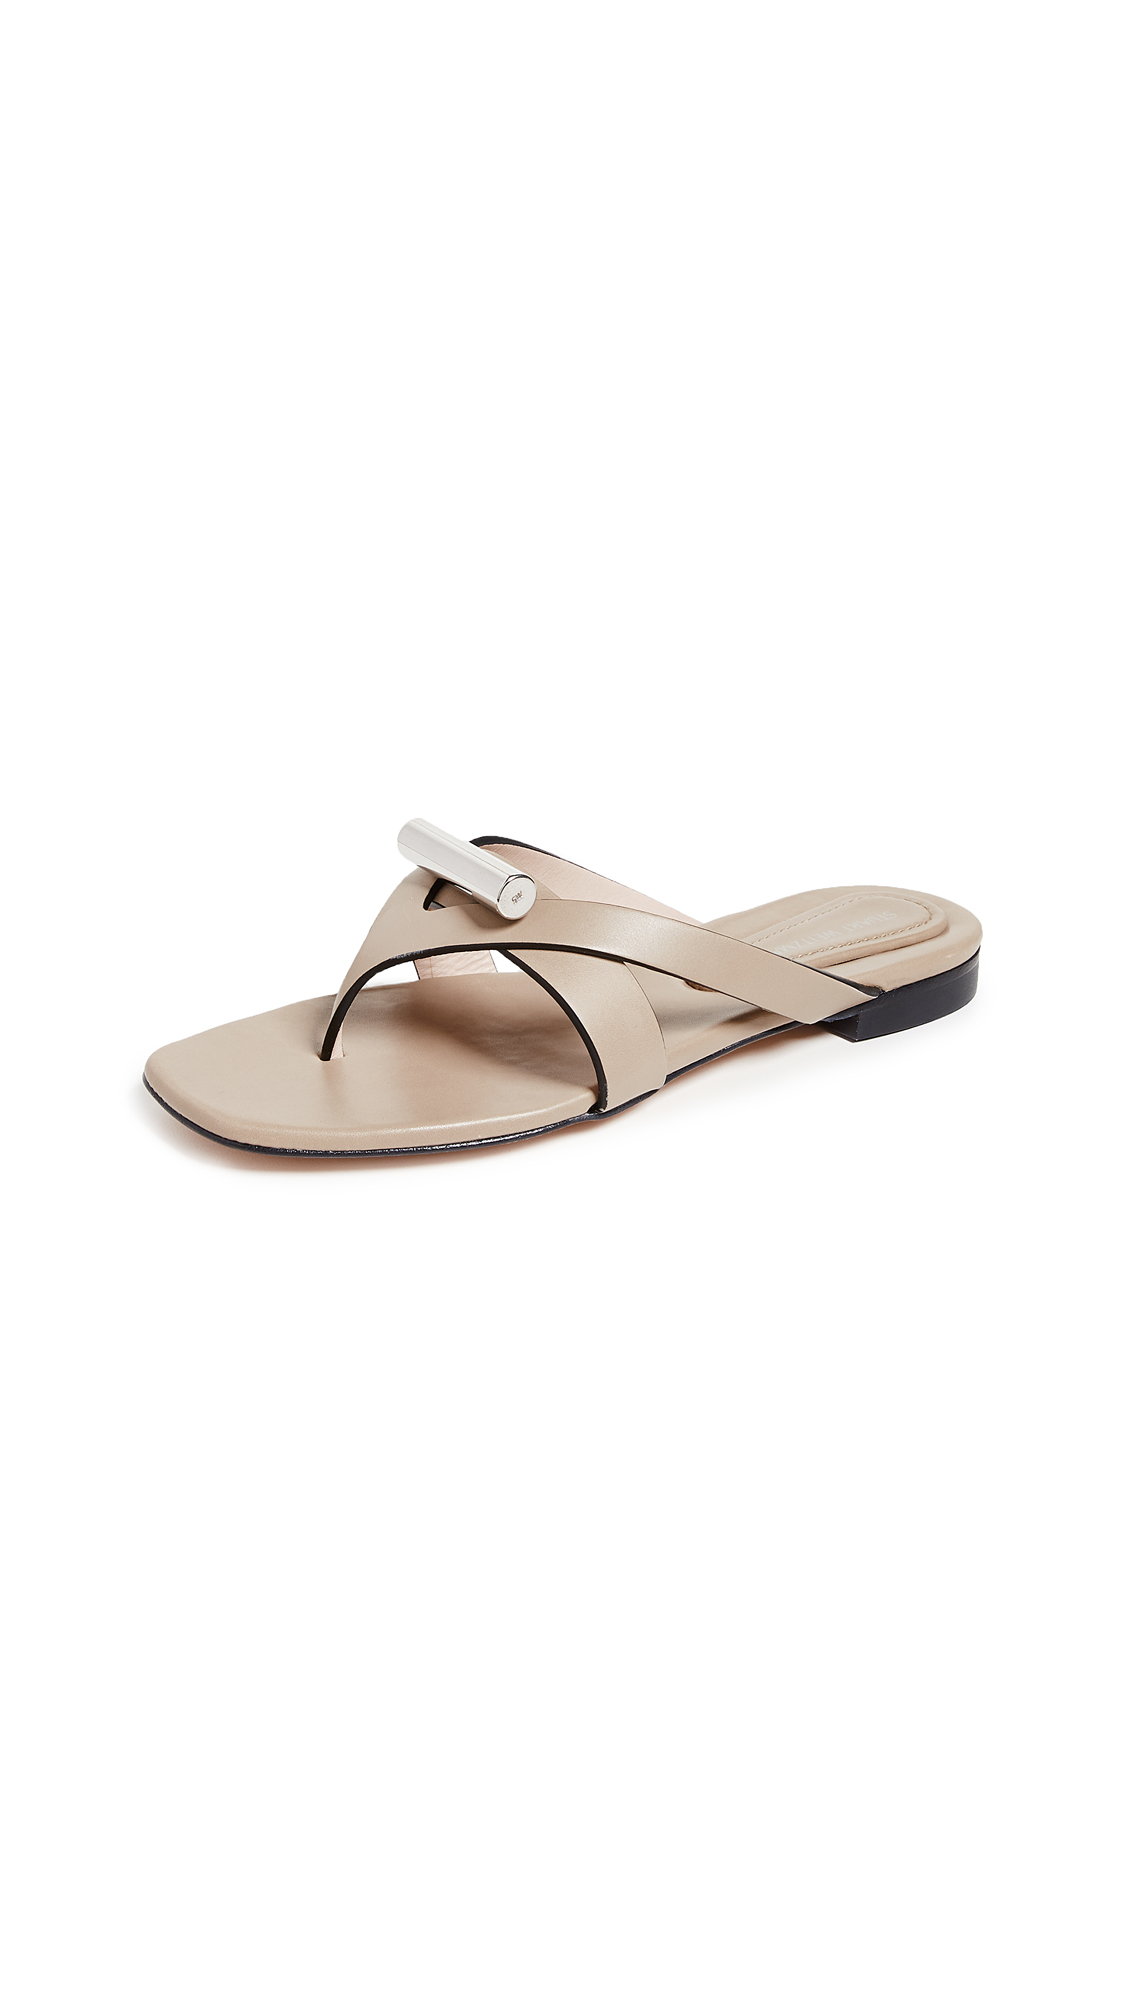 Photo of Stuart Weitzman Arro Thong Sandals online shoes sales